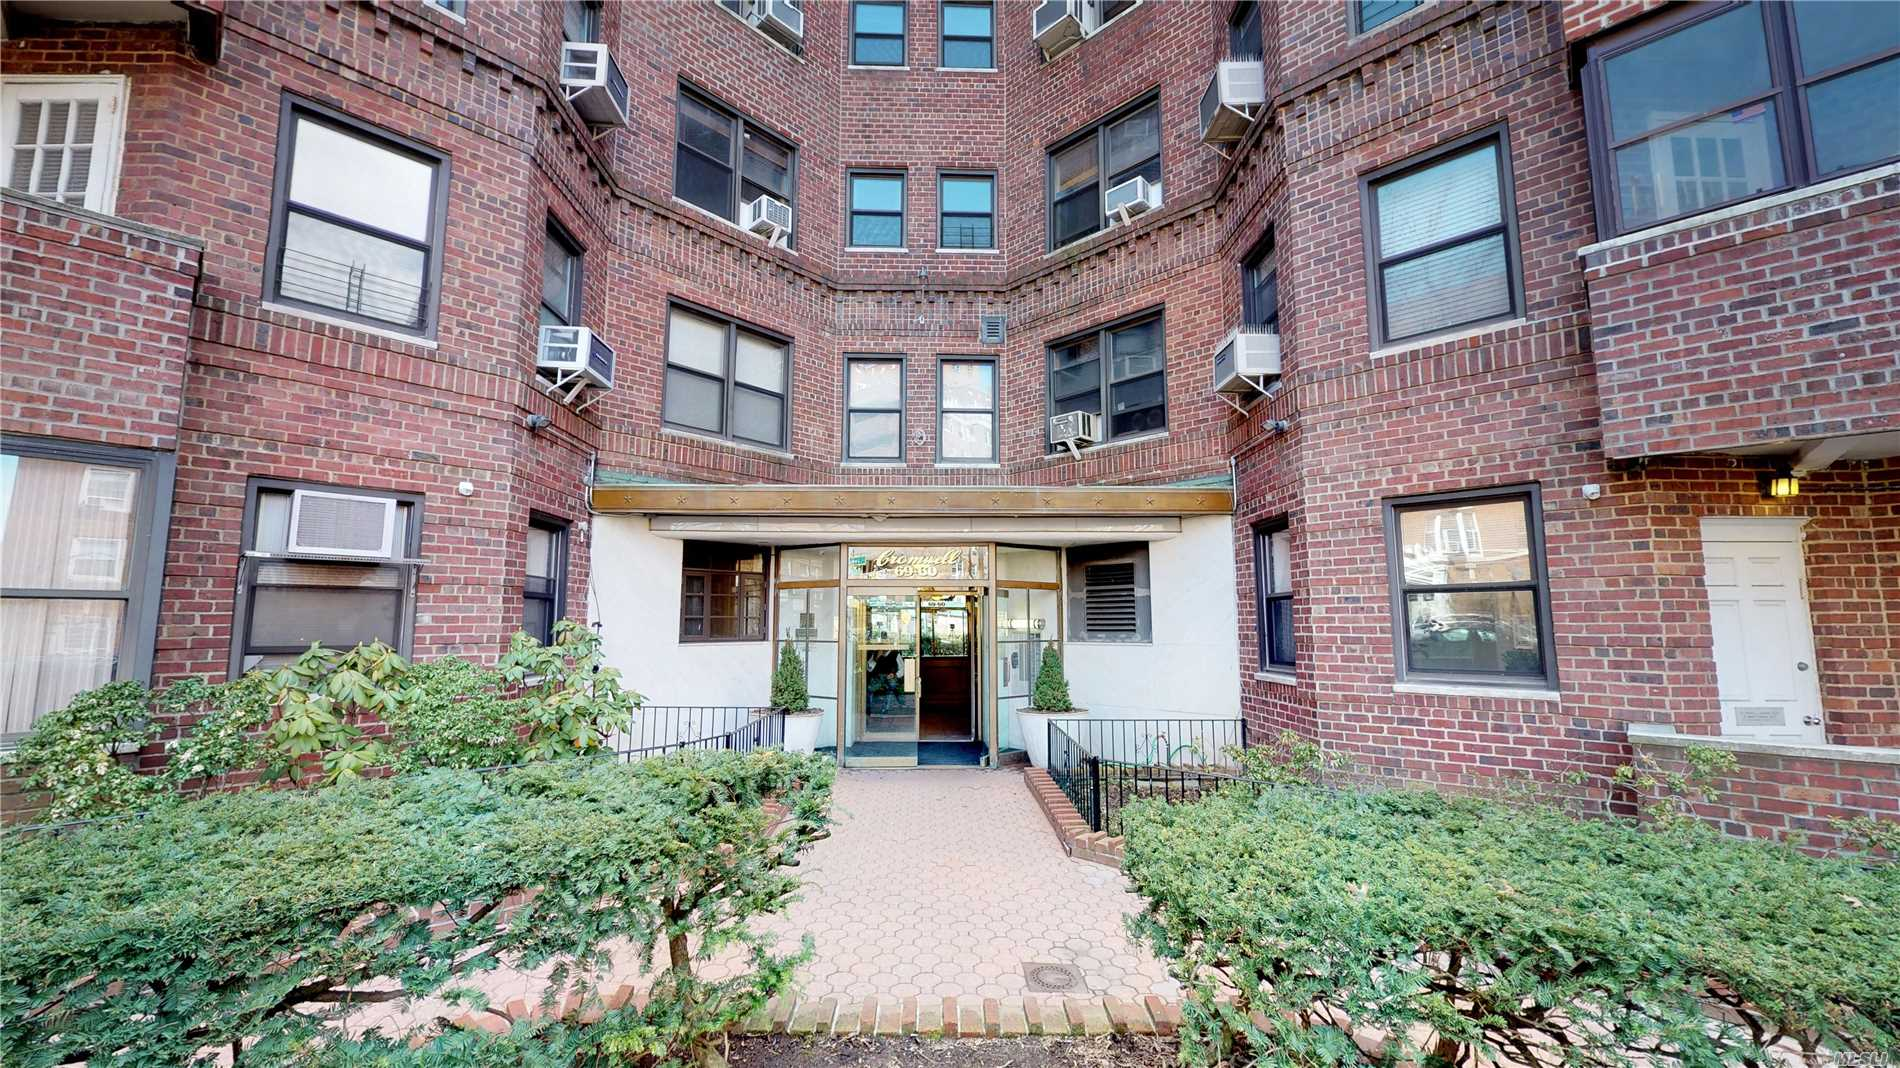 Dream xlg pet friendly 2br gem, luxury doorman bldg in forest hills, steps to e/f. State of the art gourmet open concept eat-in-kitchen. luxurious bath w 2nd shower stall+jacuzzi hot tub. Gigantic living room+dedicated dining area. Tremendous master bedroom w walk in closet, comfortable 2nd br. Generous closet+storage space. Recessed lighting, refined+exquisite finishing+details, rich crown molding throughout. Will be delivered fully painted with newly polished hardwood floors. Laundry, fios.